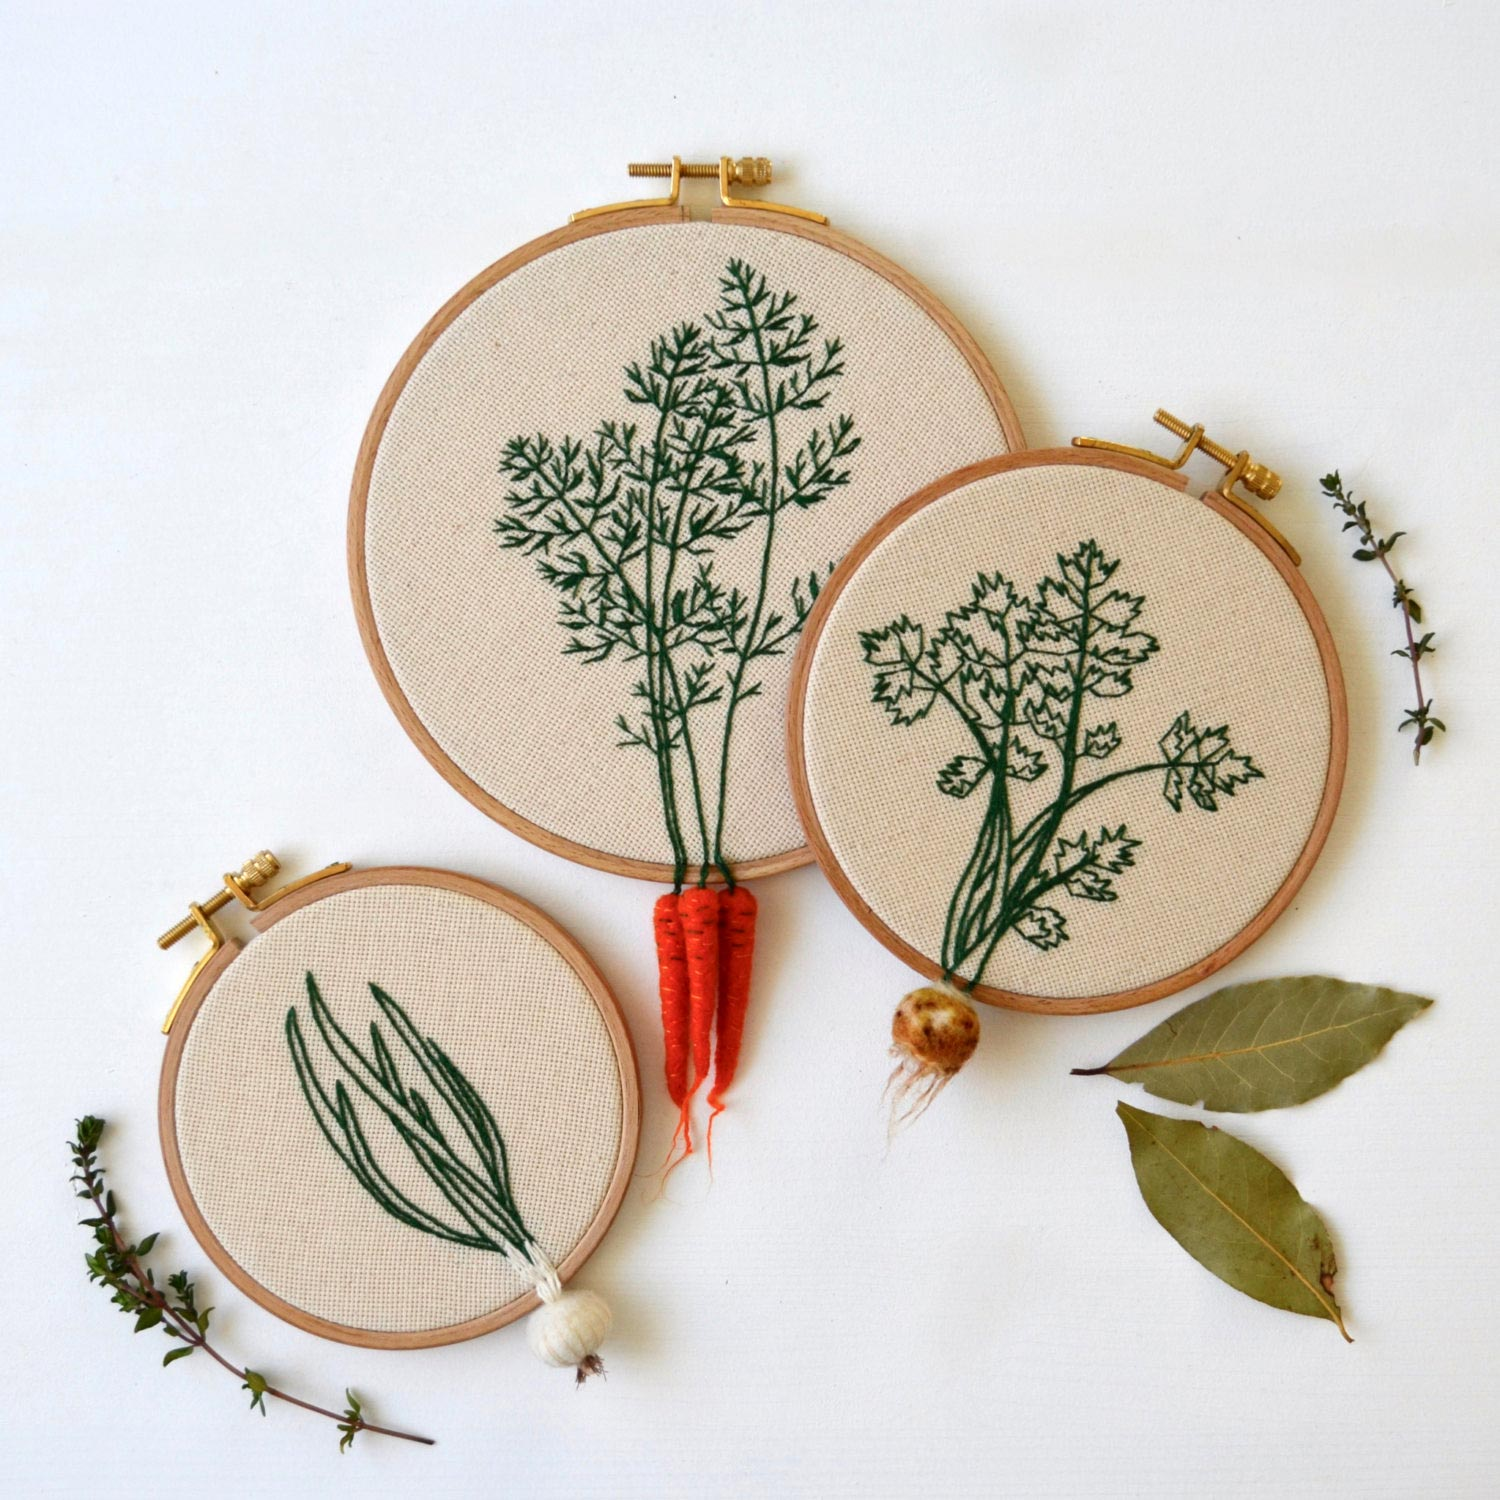 carrots and onions hanging outside of embroidery hoop by carrot hoop art by veselka bulkan